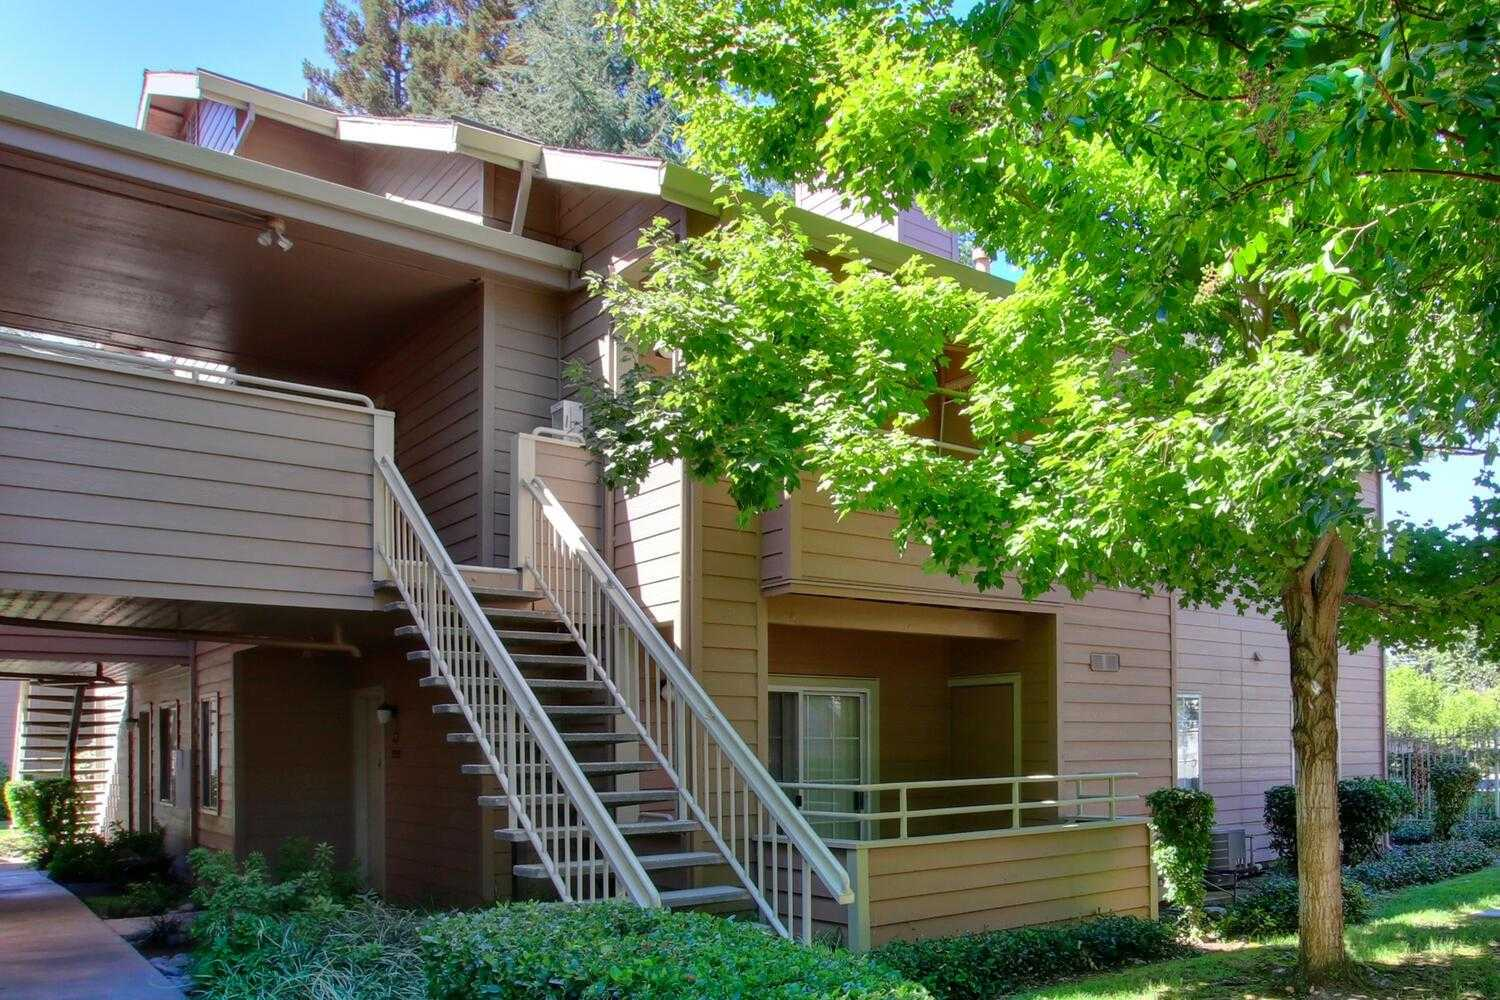 $225,000 - 3Br/2Ba -  for Sale in Rancho Cordova